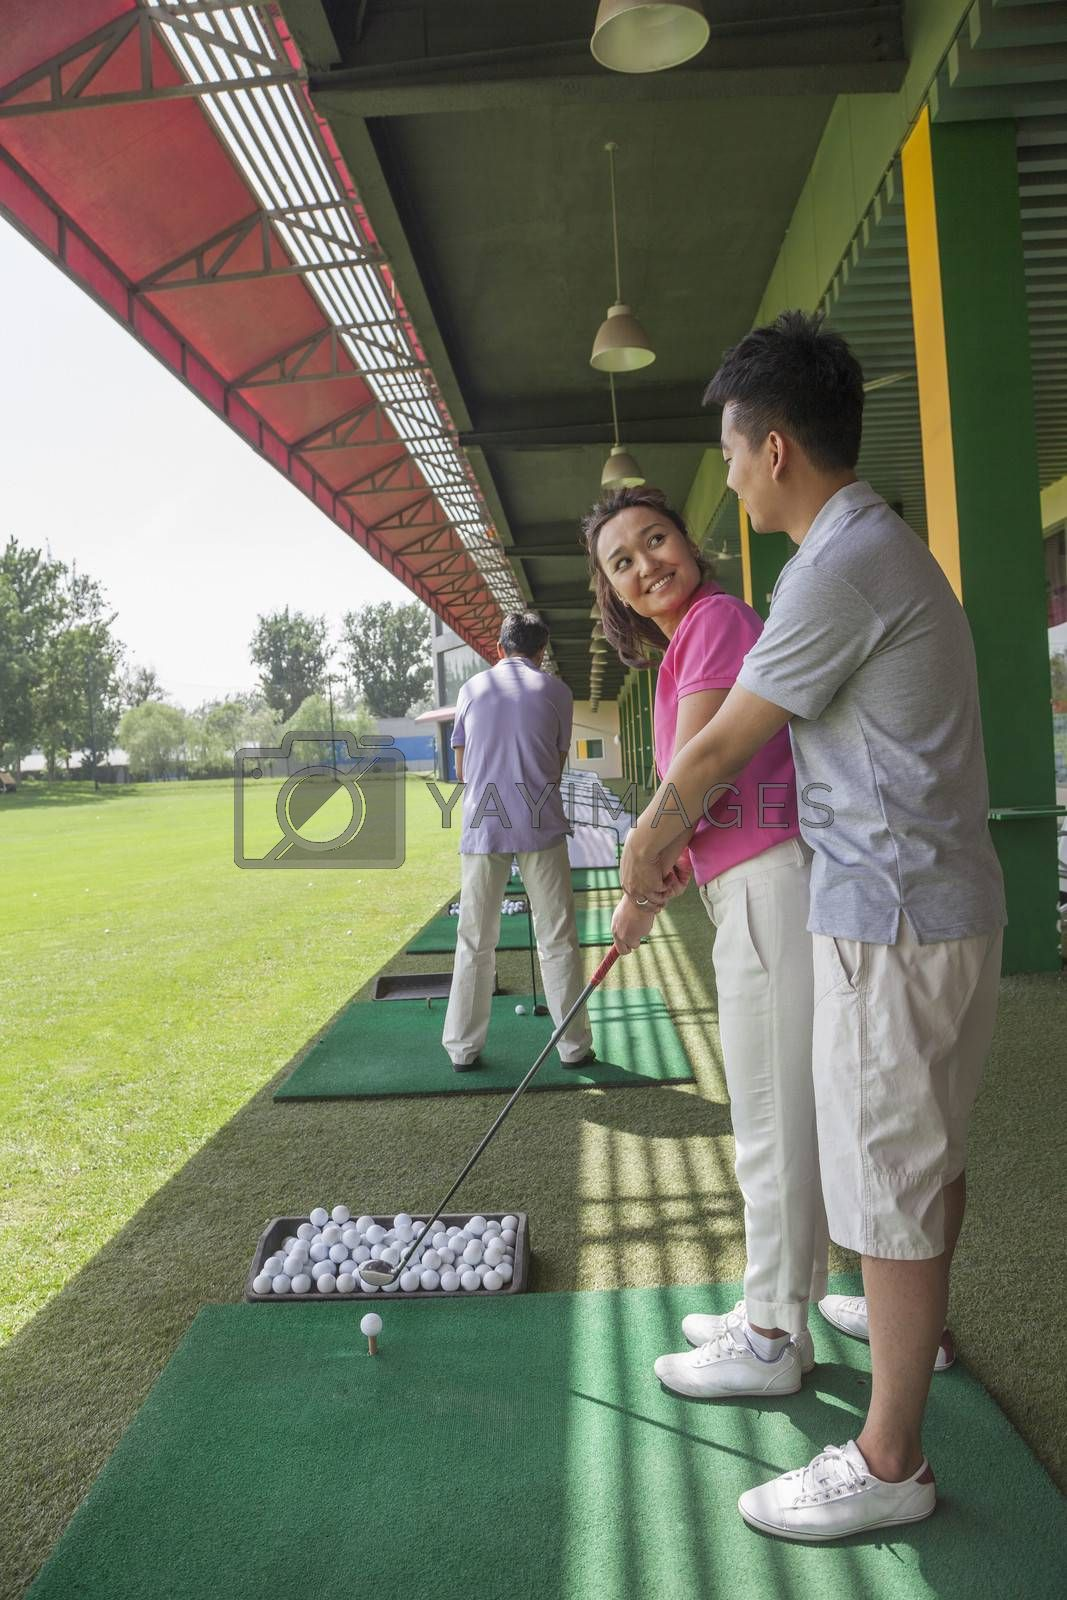 Young man teaching his girlfriend how to hit golf balls, arm around, side view